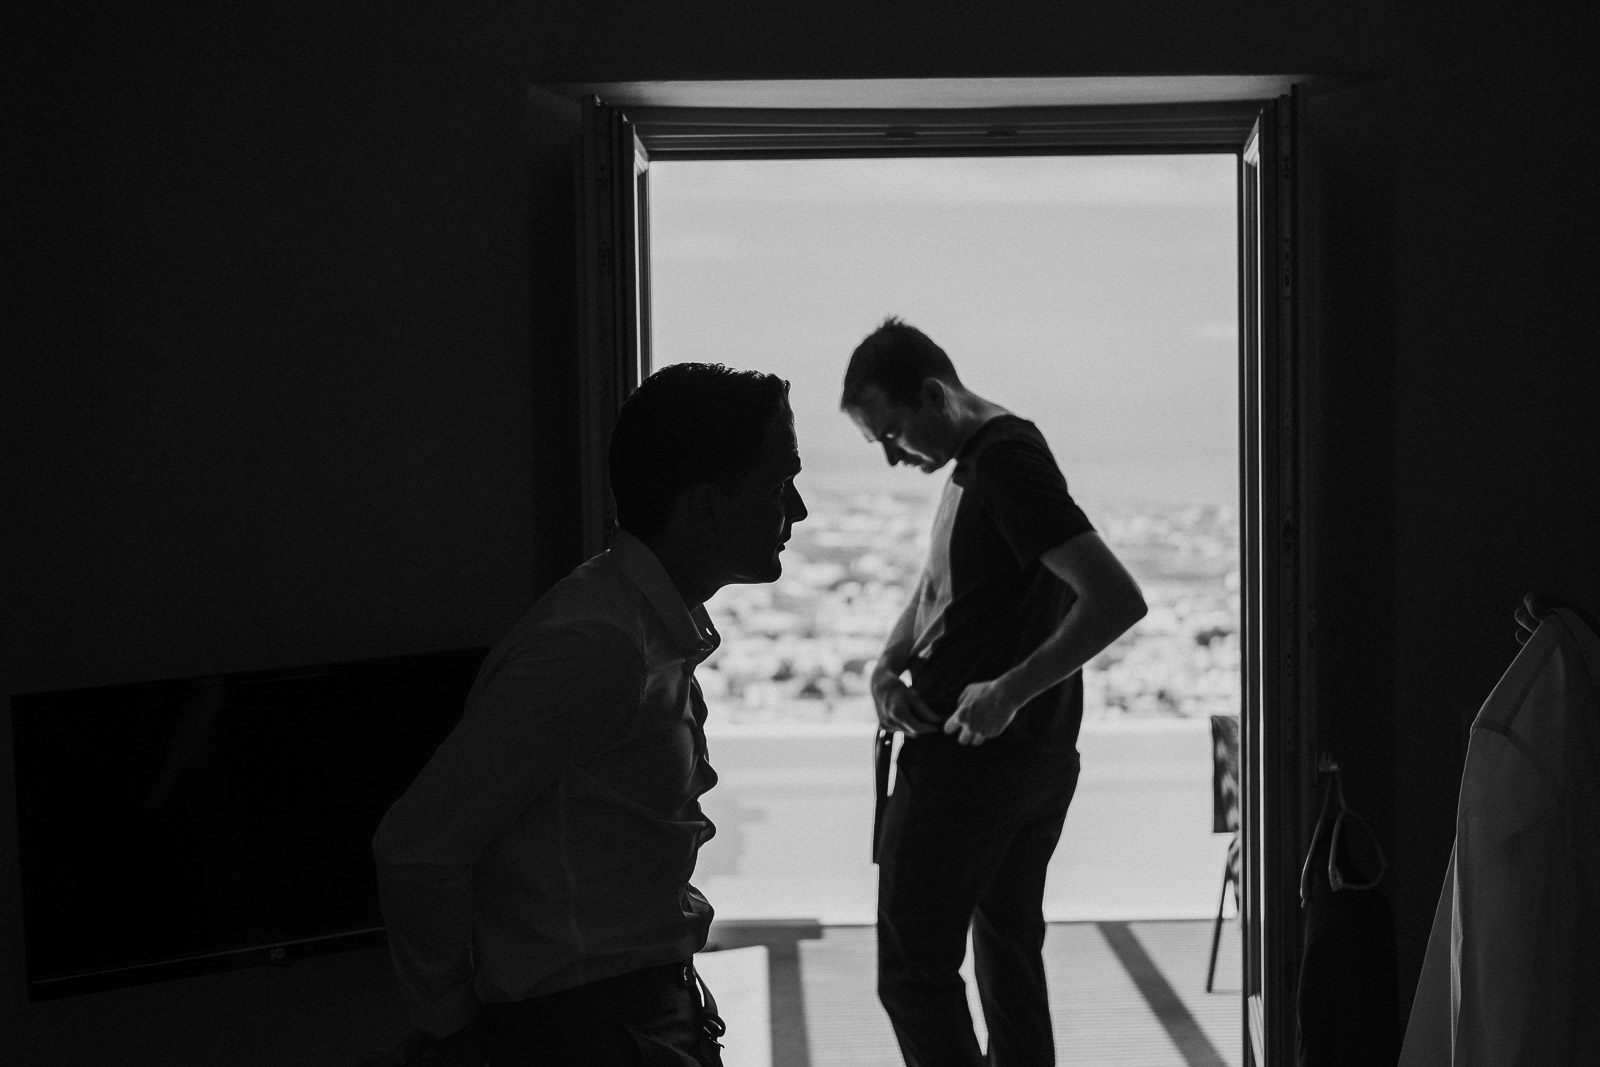 Santorini-Wedding-Photographer-Greece-Destination-Weddings-Mait-Juriado-M&J-Studios-022